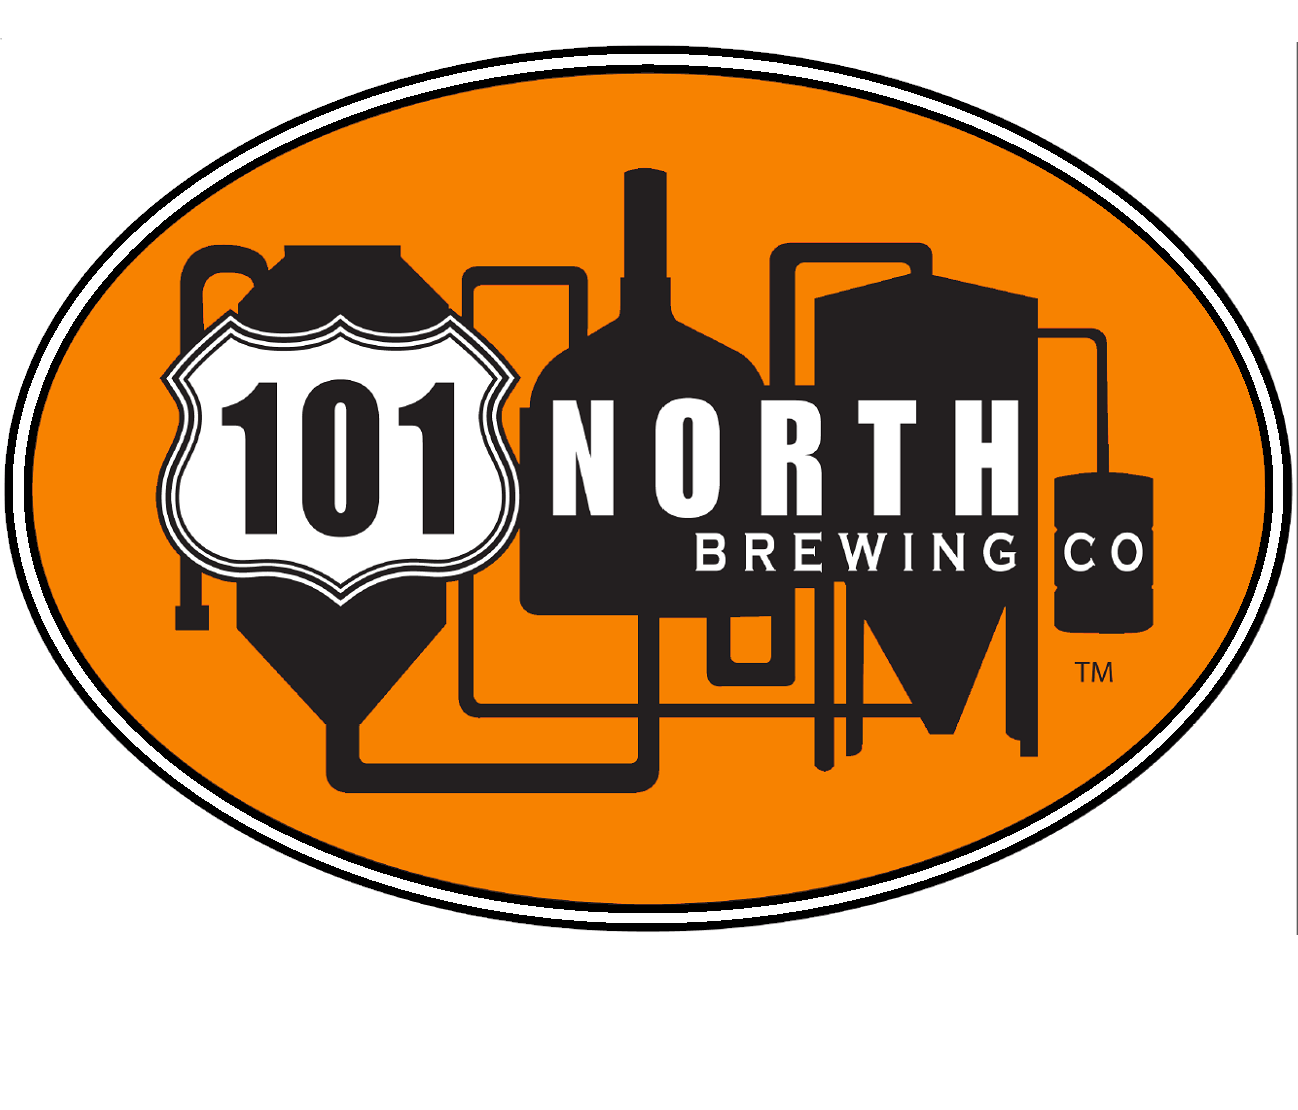 101 North Brewing Company image